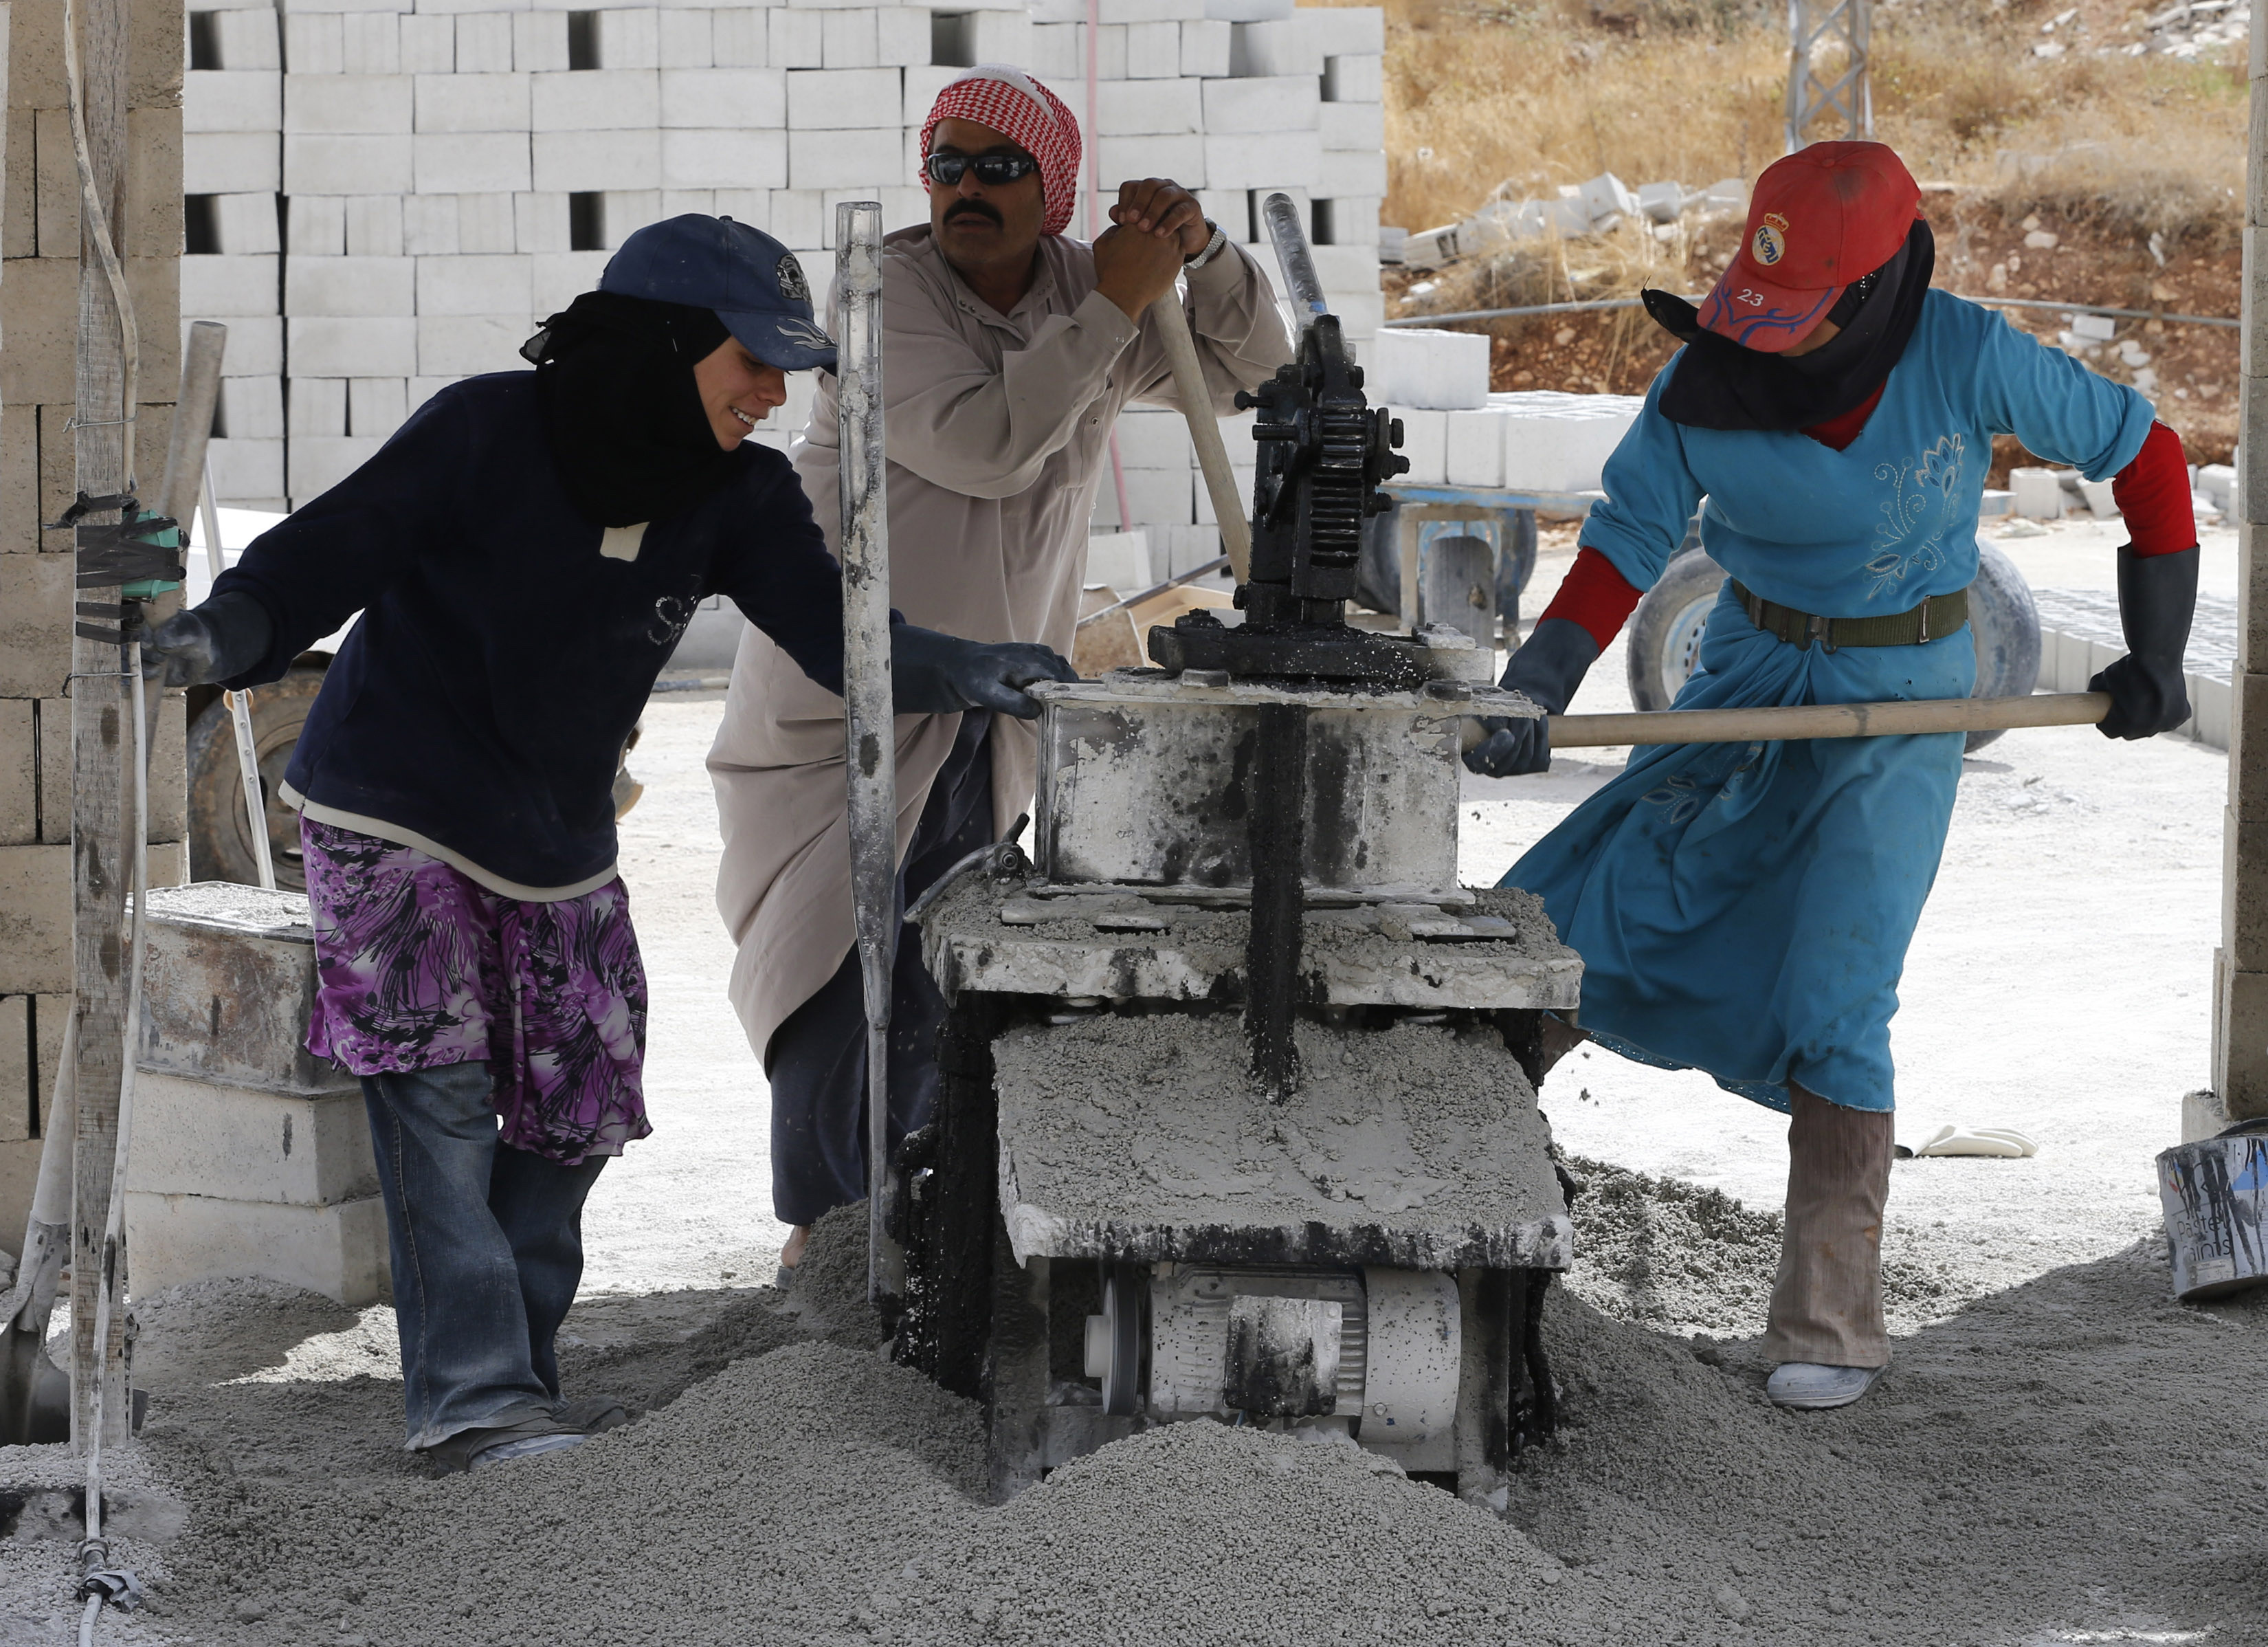 Syrian refugees work to help produce concrete blocks in Bekaa Valley, Lebanon.